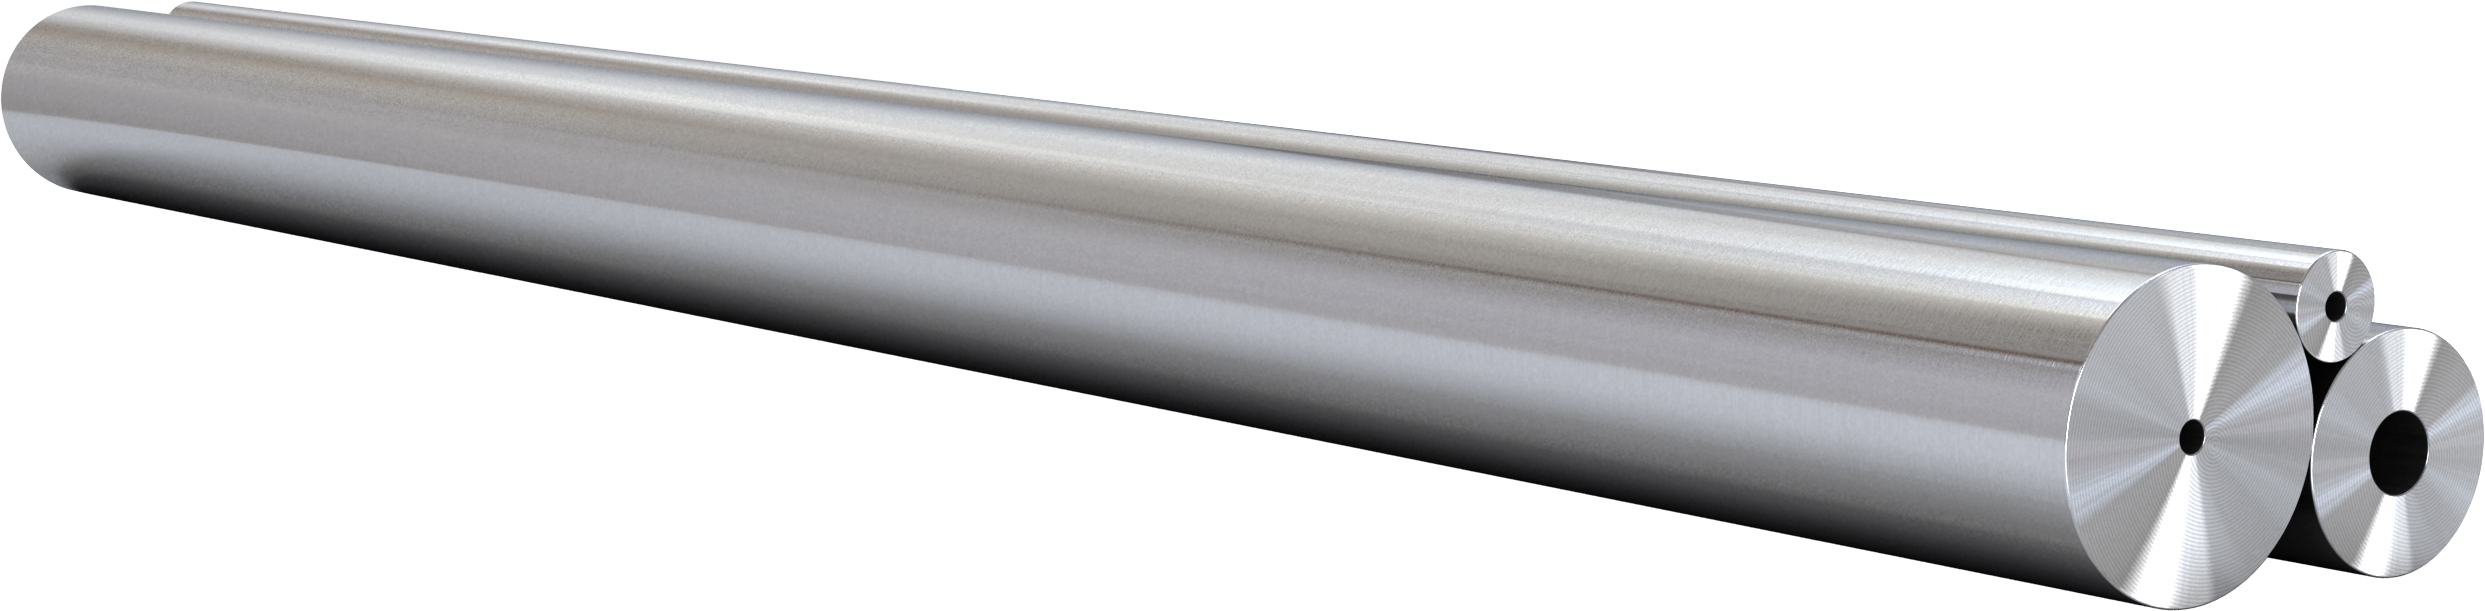 High Pressure Pipe : Precision tubes — sandvik materials technology